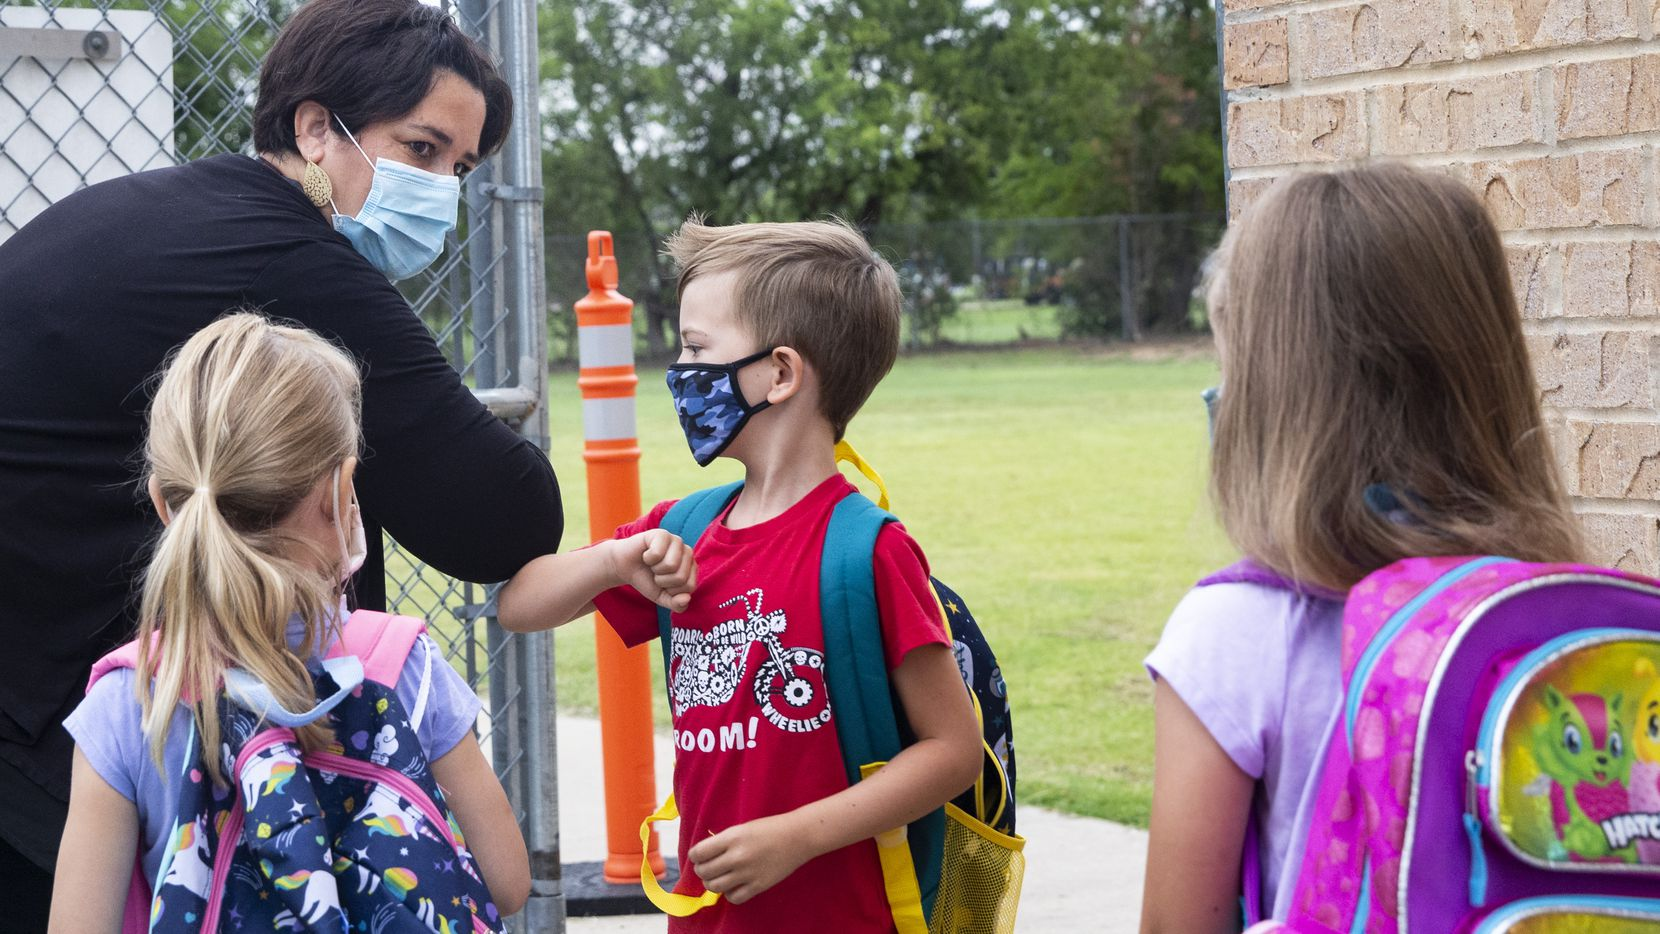 Administrative Assistant Erin Johnston, left, gives an elbow bump to kindergarten student Jack Lewis during morning drop-off at Carrie L. Lovejoy Elementary School in Allen, Texas, on Wednesday, Sep. 9, 2020.